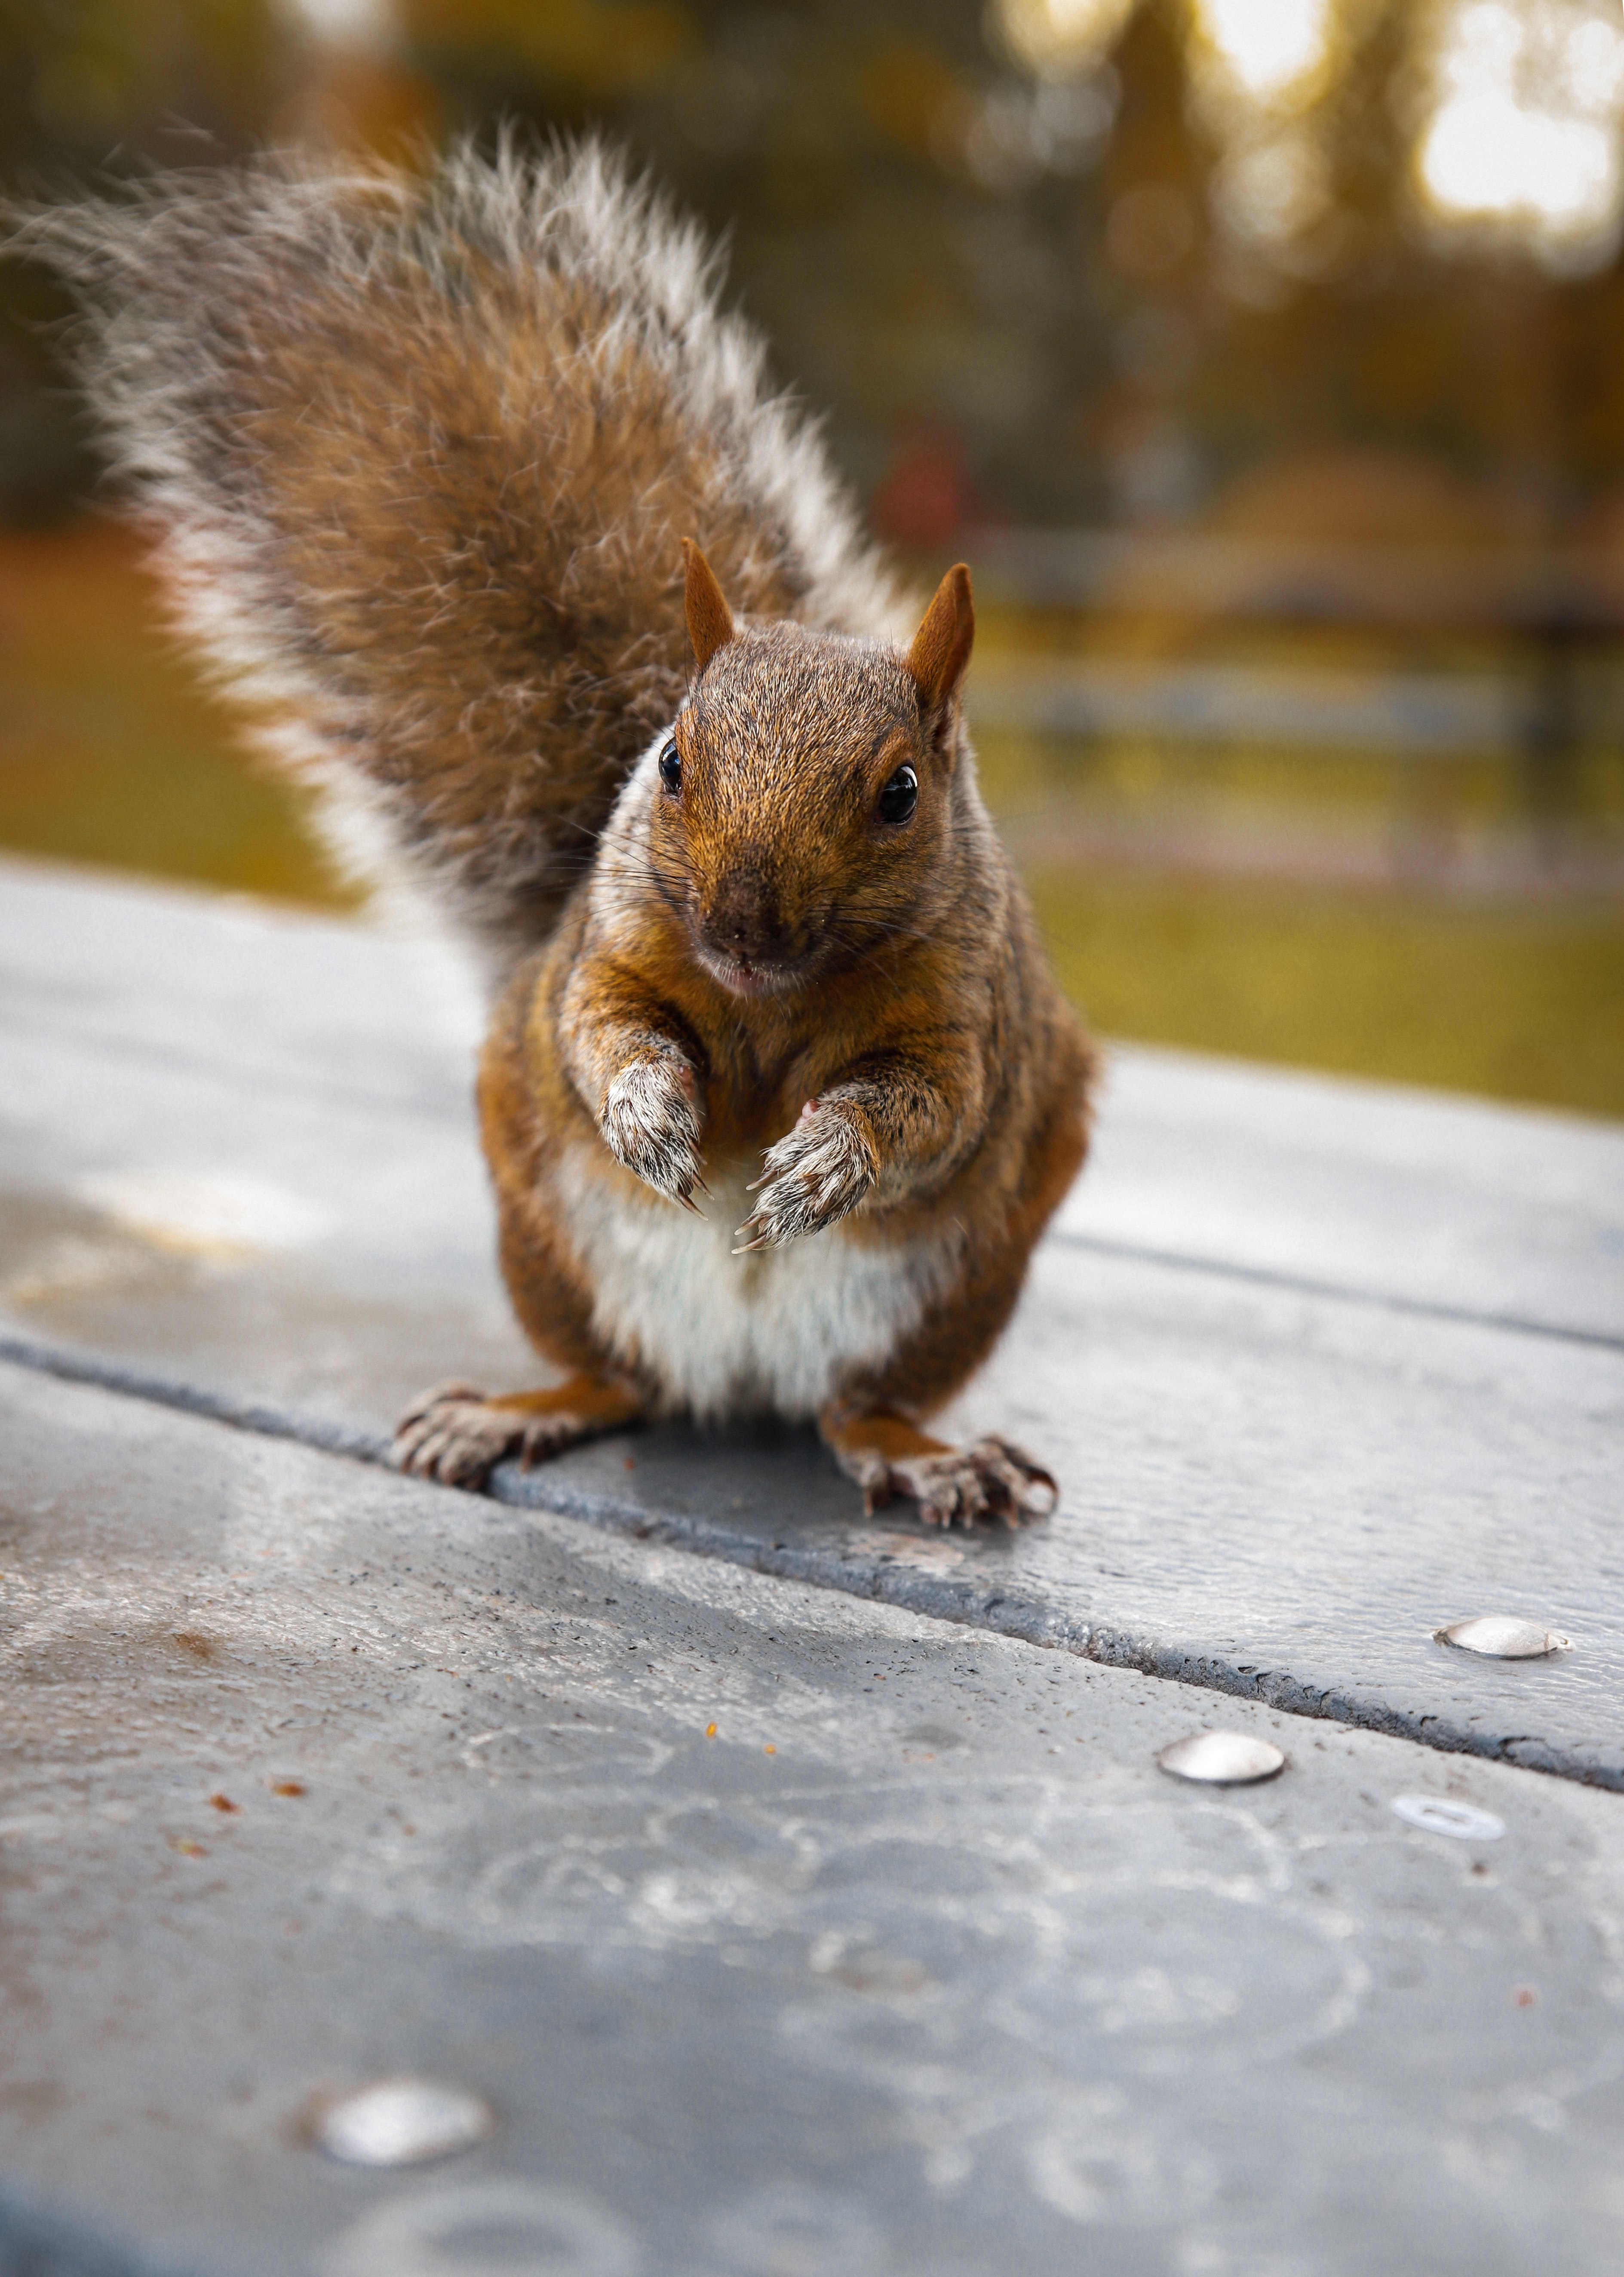 123939 download wallpaper Animals, Squirrel, Nice, Sweetheart, Funny, Rodent screensavers and pictures for free